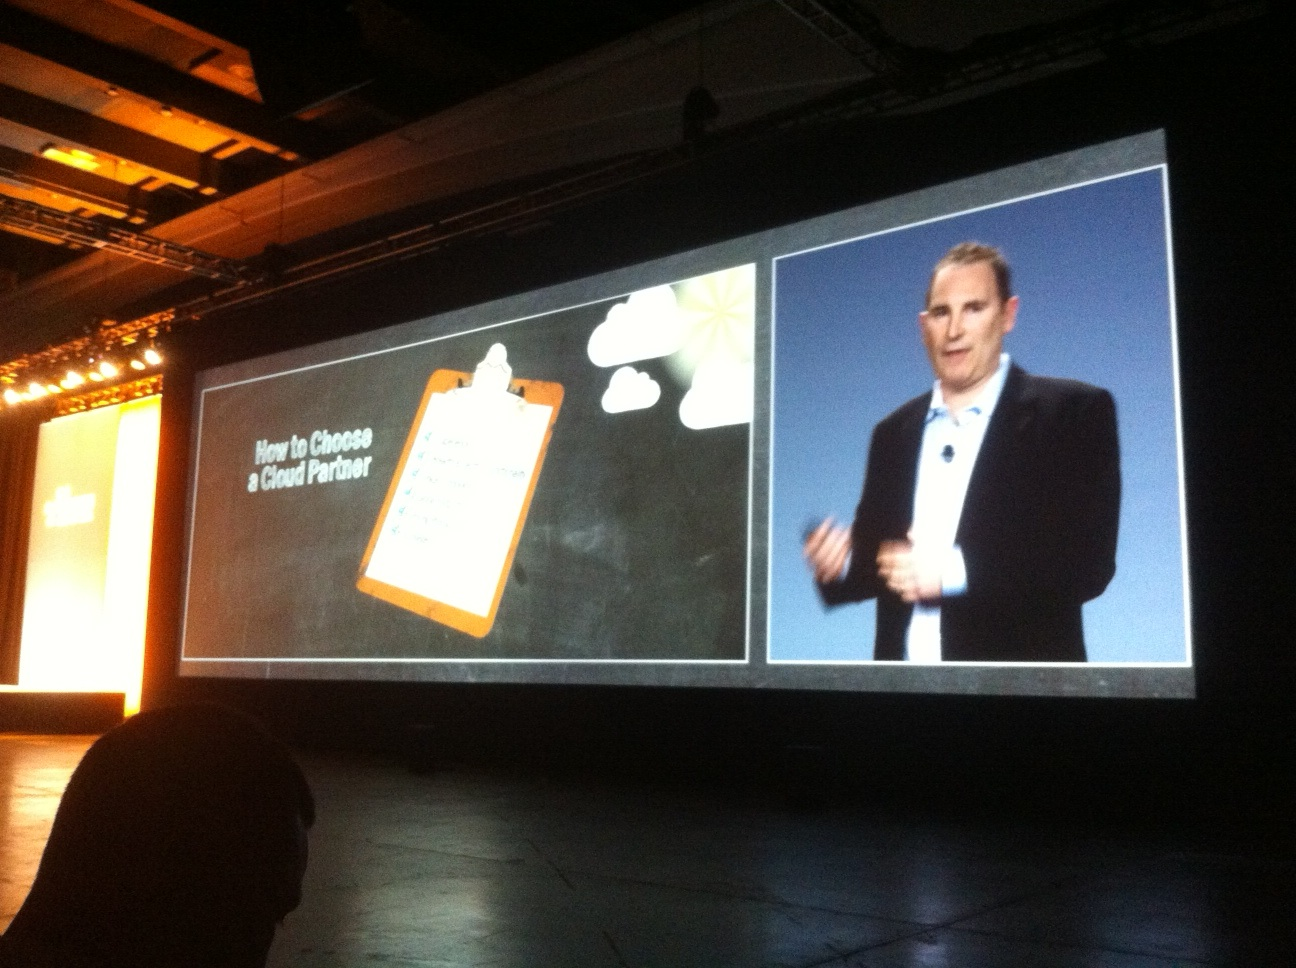 Andy Jassy, senior vice president of Amazon Web Services, at AWS Summit 2013 in San Francisco, April 30, 2013